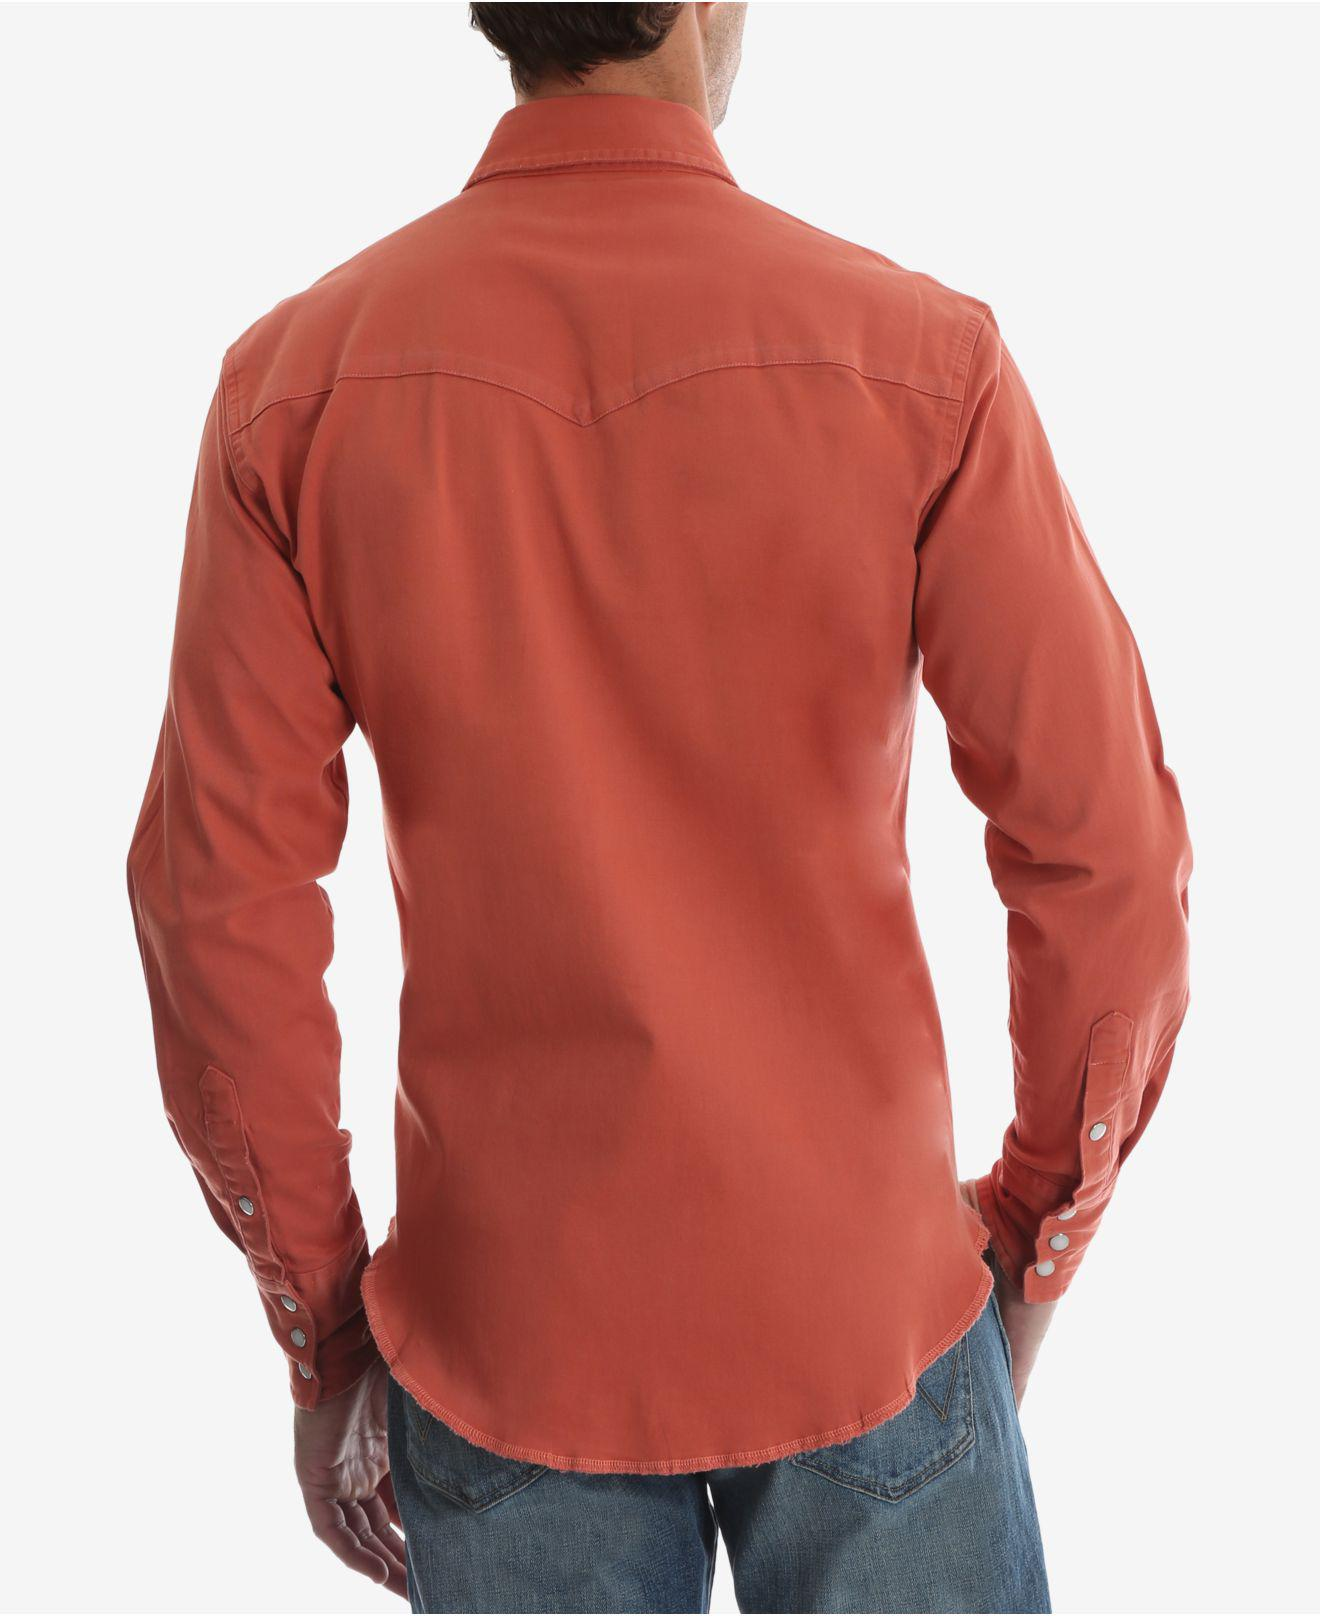 be0d5a1177605a Lyst - Wrangler Authentic Western Long Sleeve Twill Shirt in Red for Men